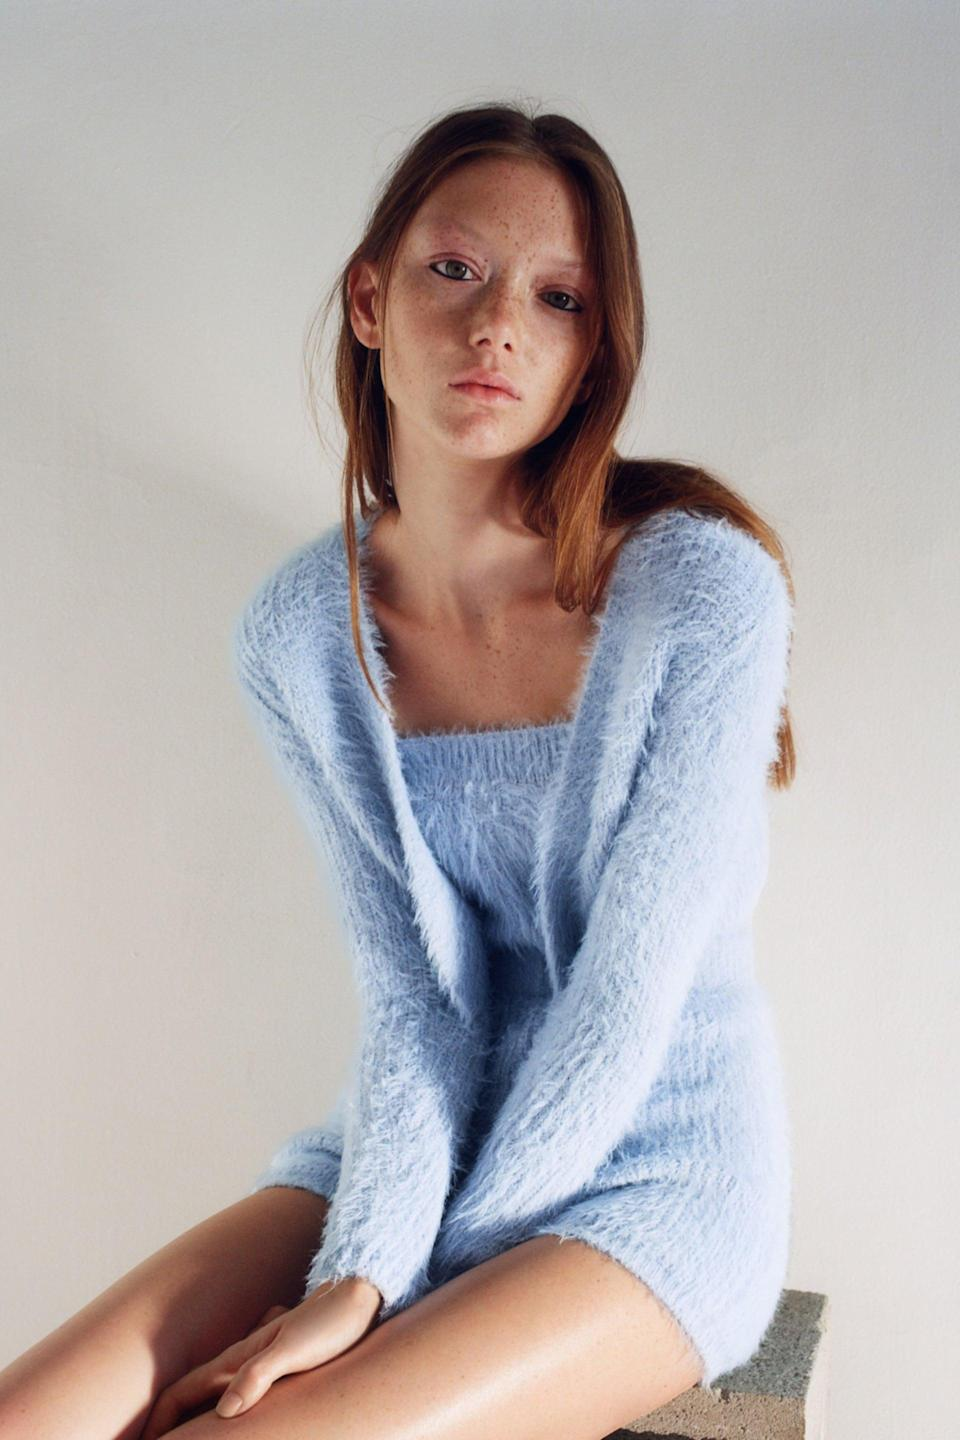 <p>Zara's baby-blue <span>Soft Touch Cardigan</span> ($36) and <span>Soft Feel Cropped Top</span> ($20) are adorable.</p>